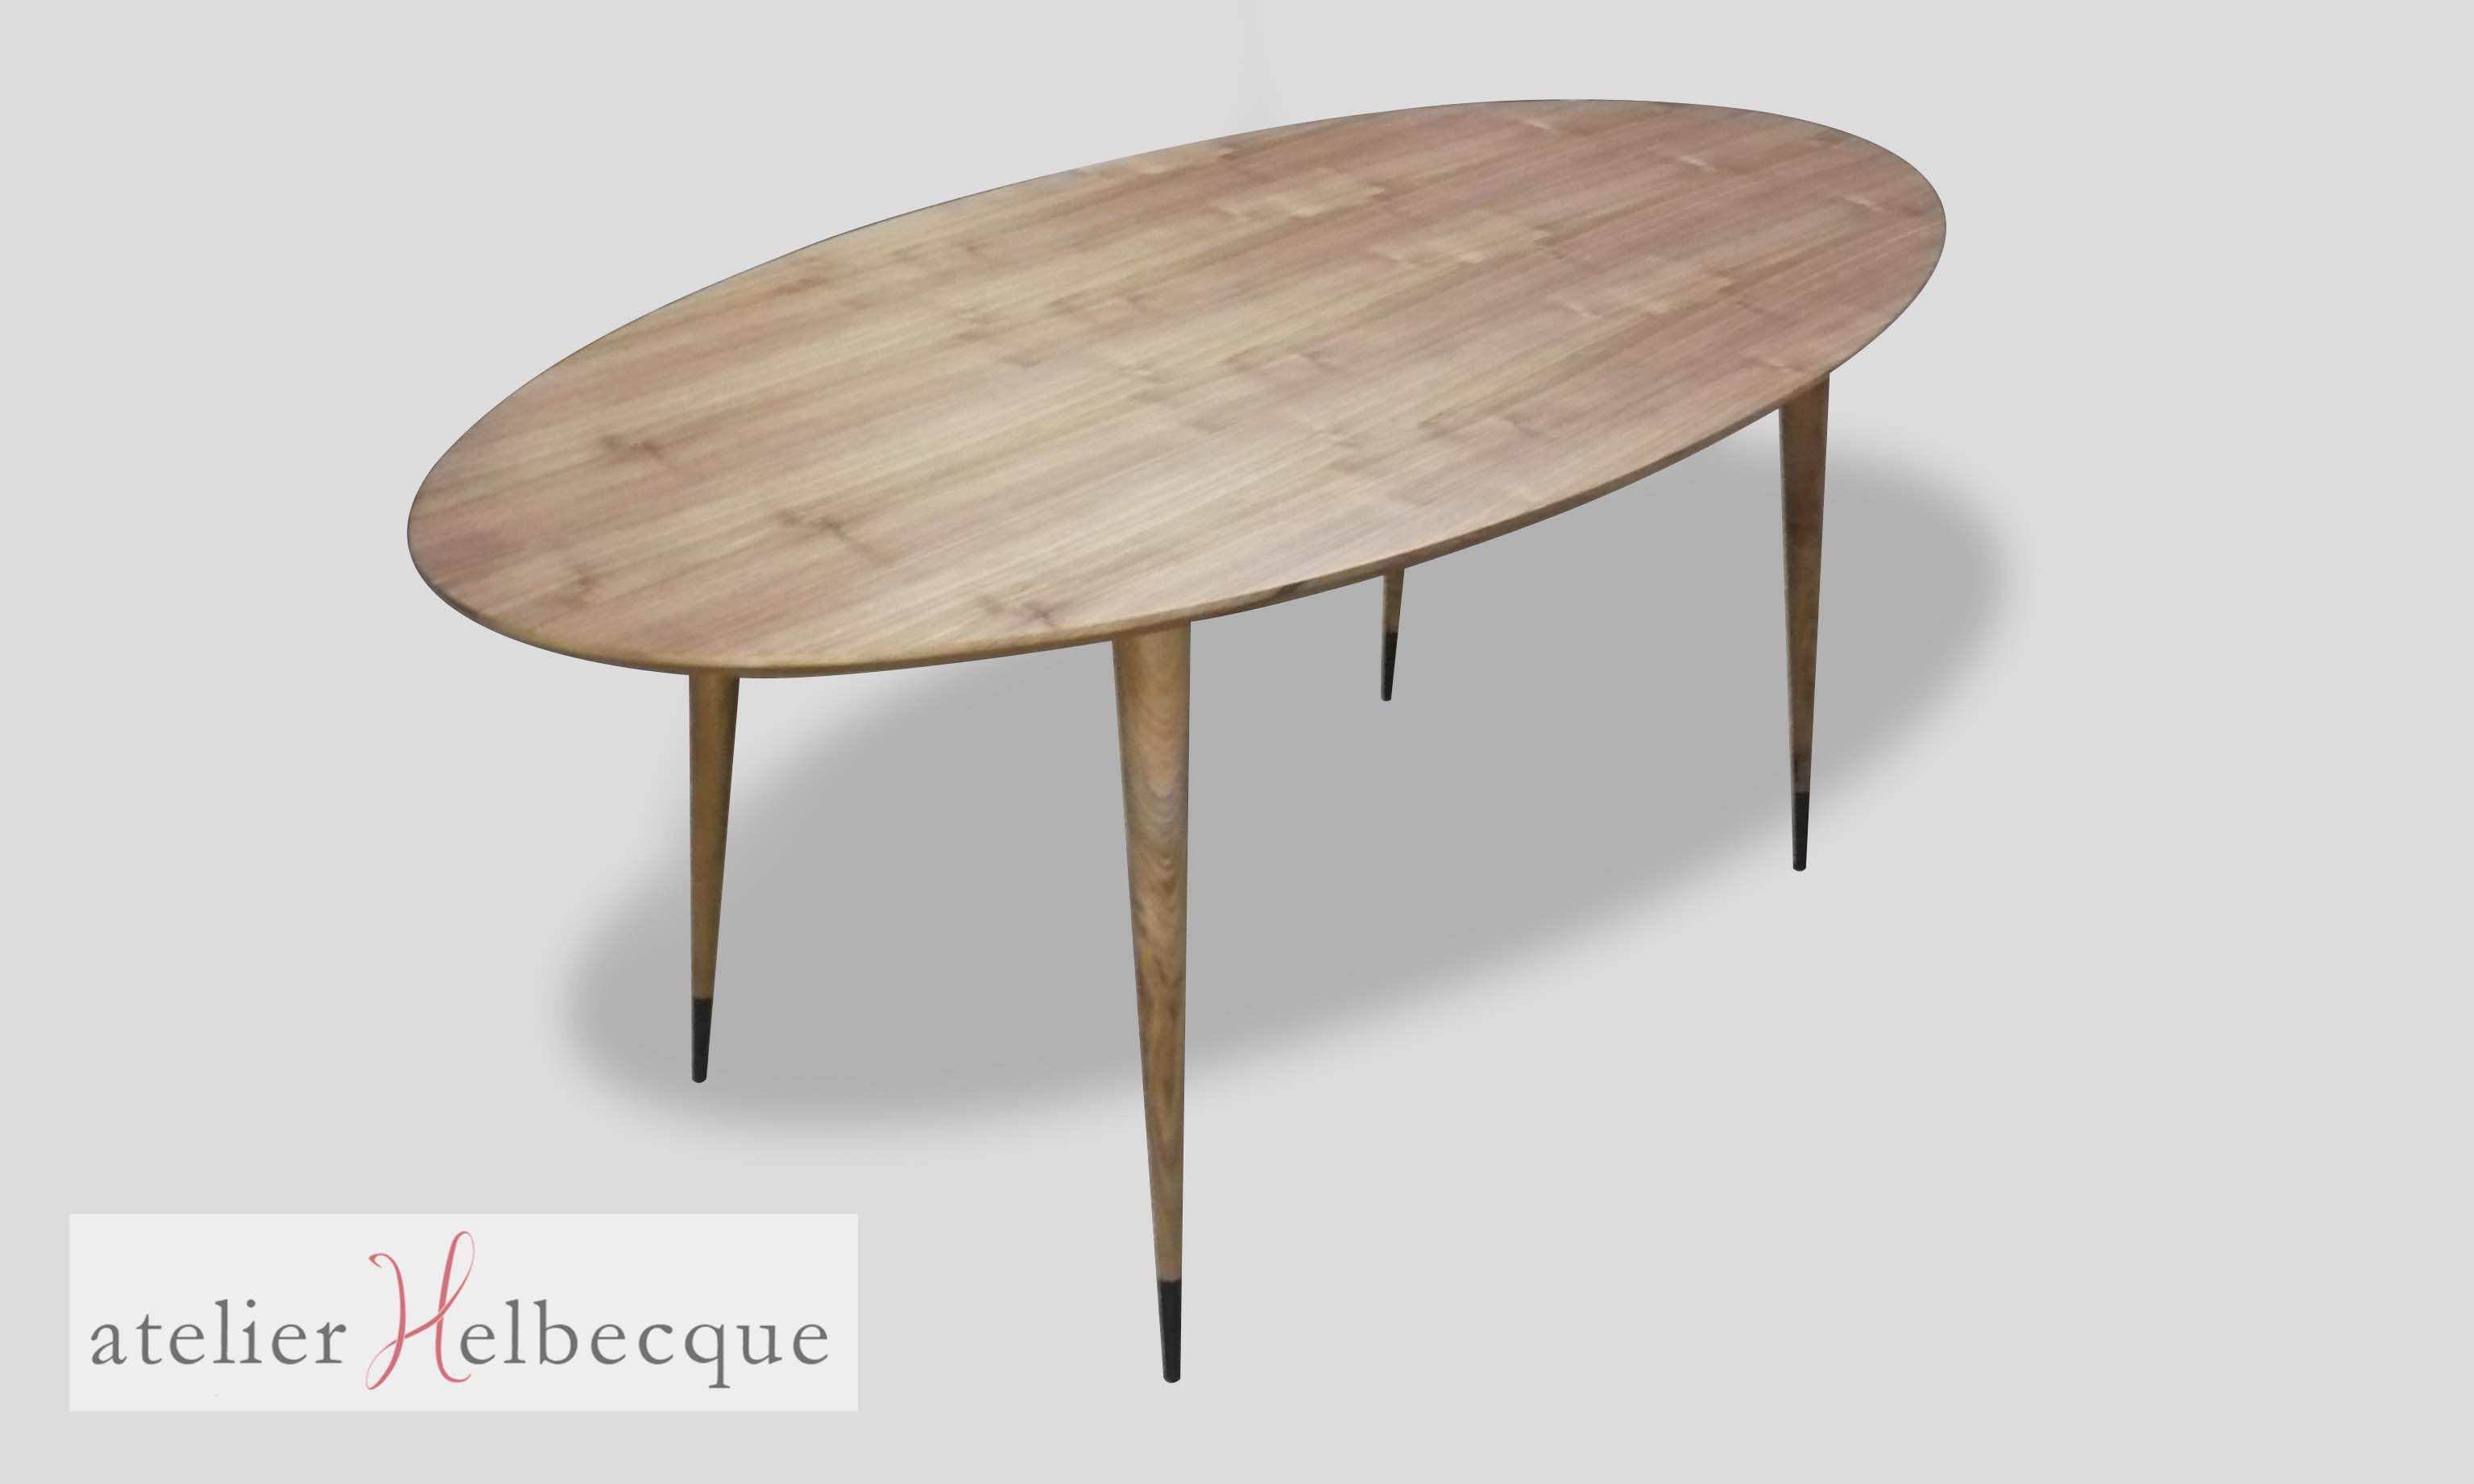 B niste cr ateur fabricant de table contemporaine atelier - Table a manger ovale ...